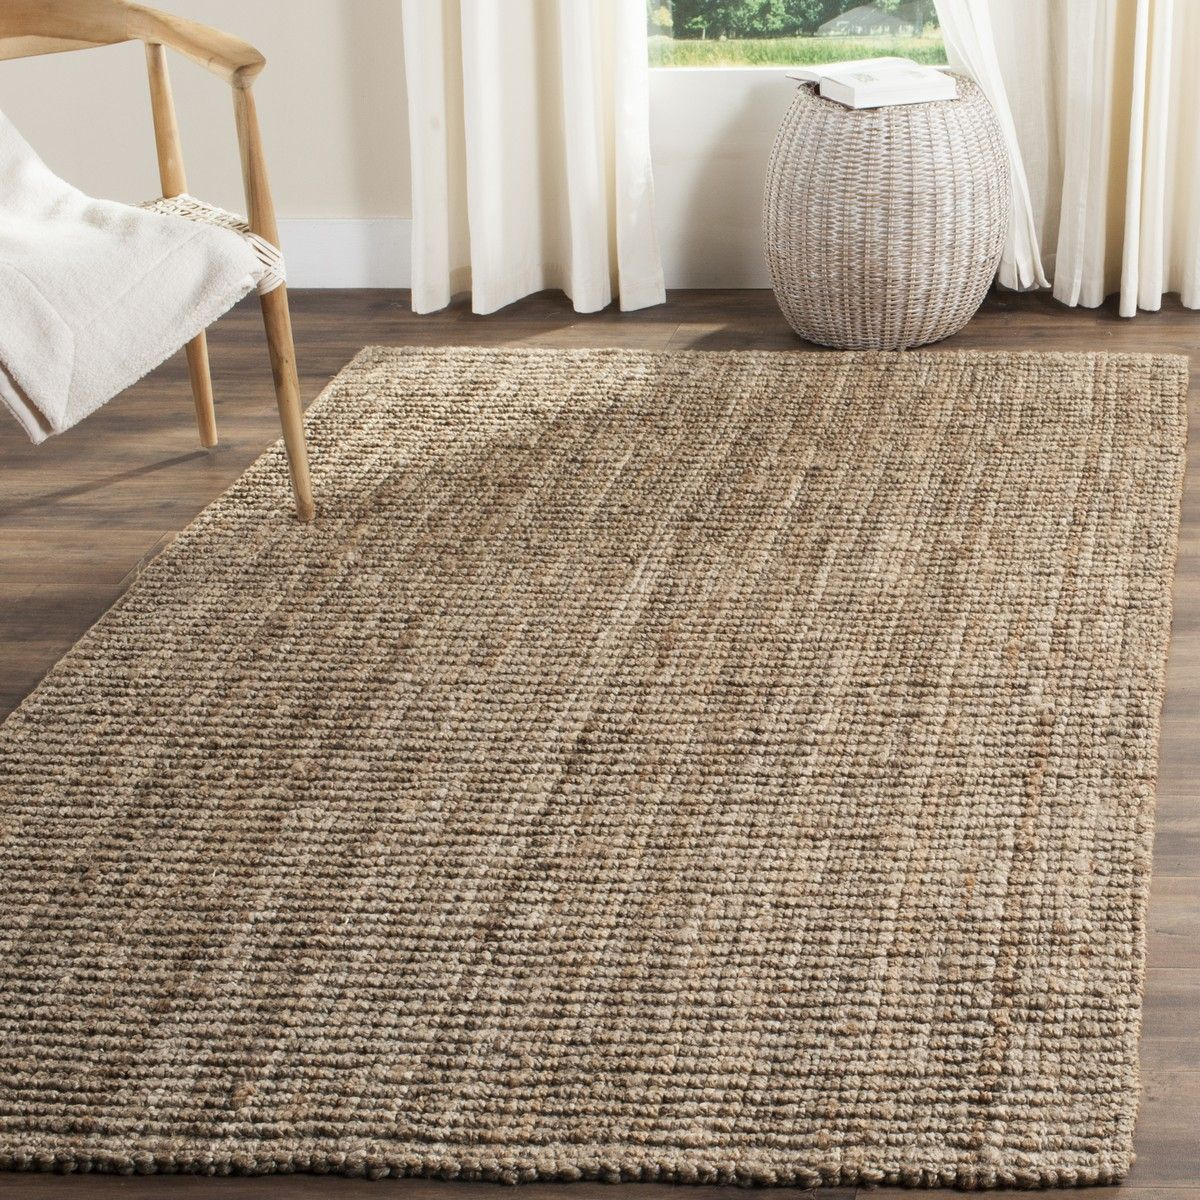 Rug Nf447m Natural Fiber Area Rugs By